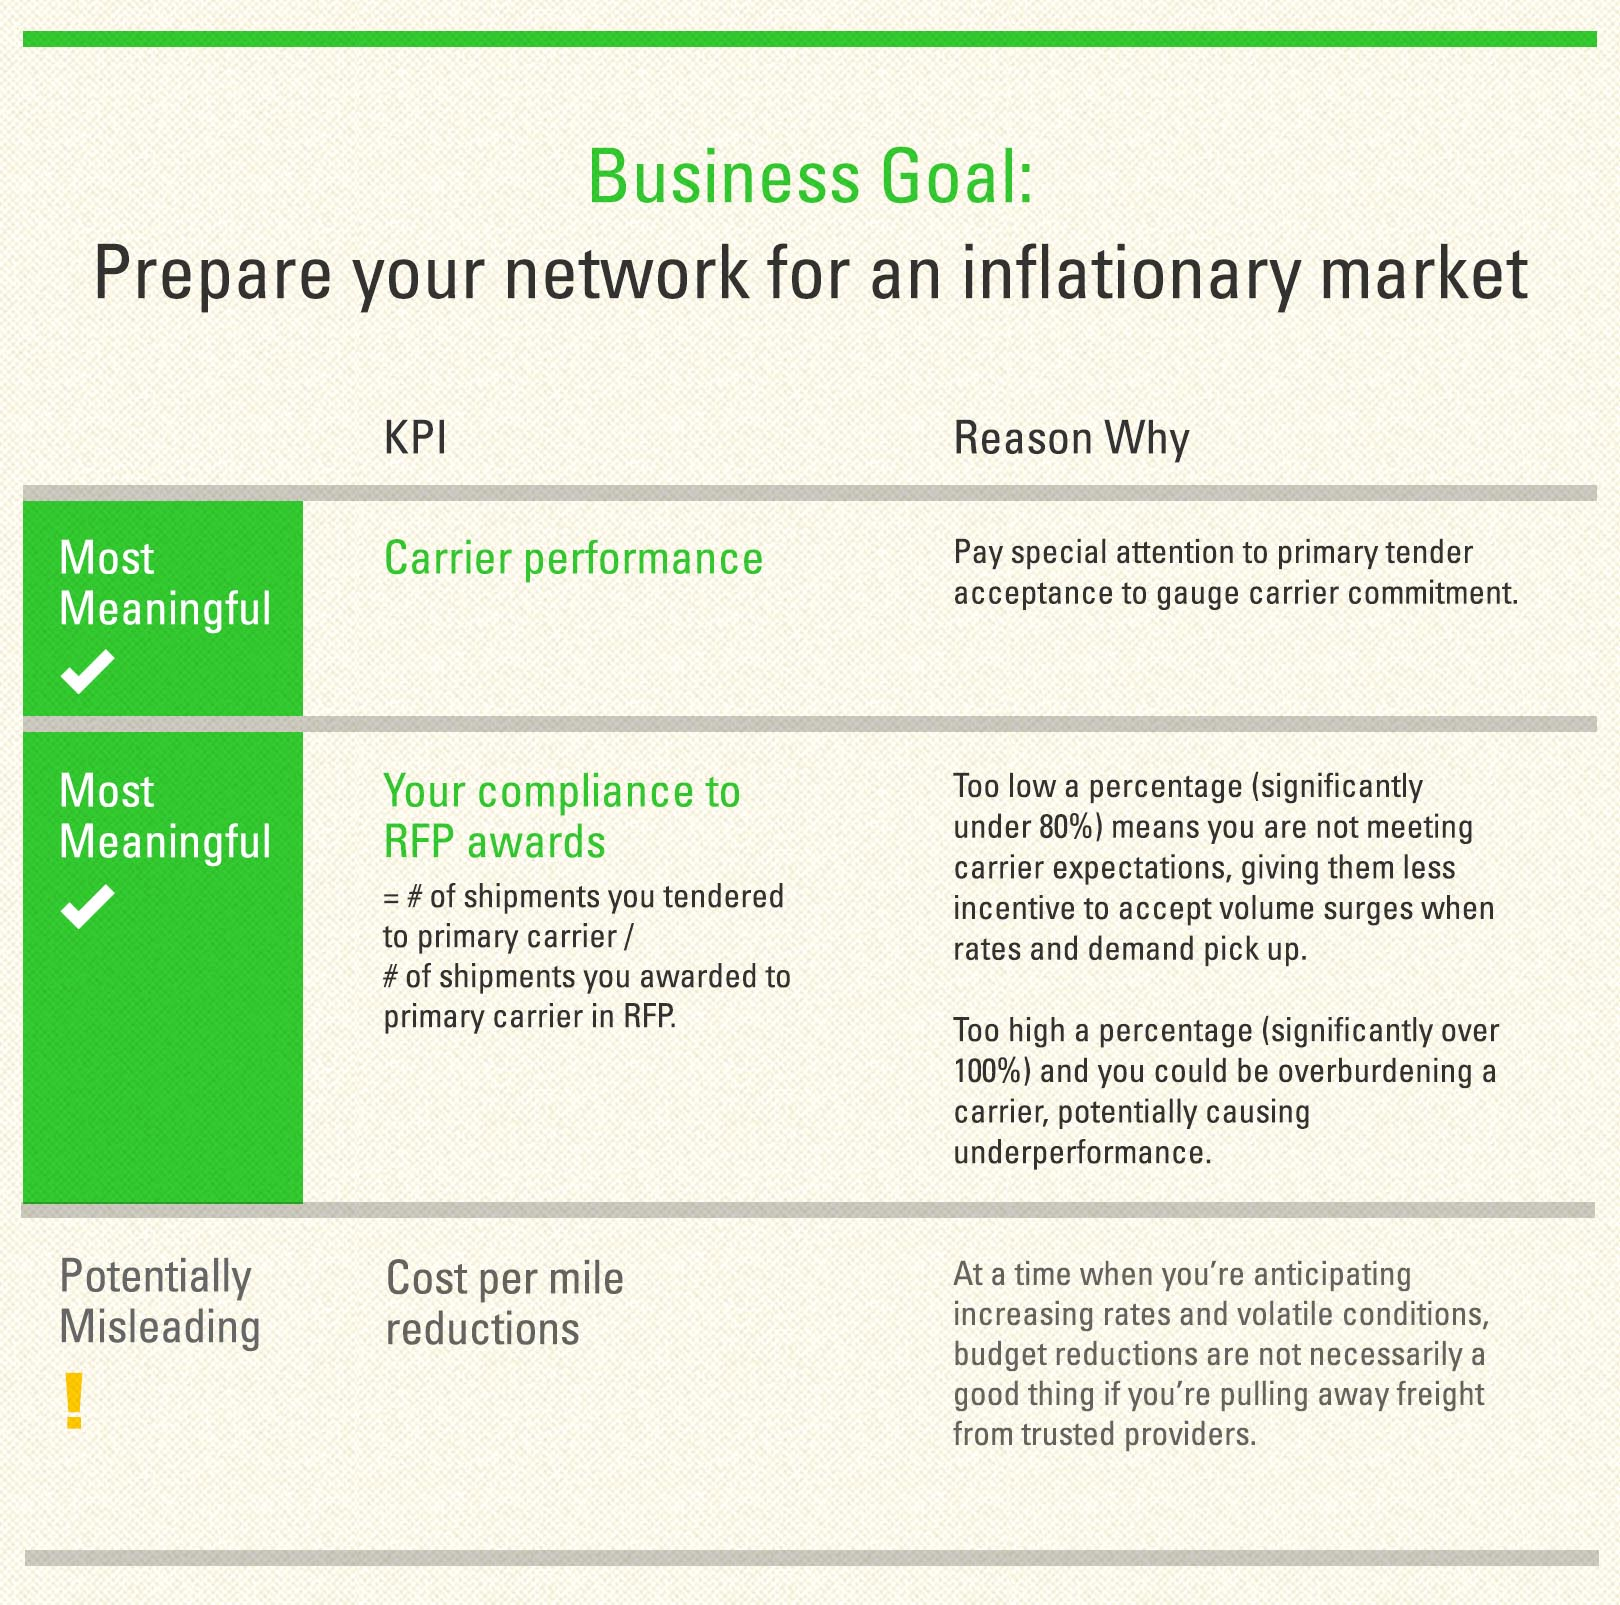 Business Goal Prepare your network for an inflationary market graphic